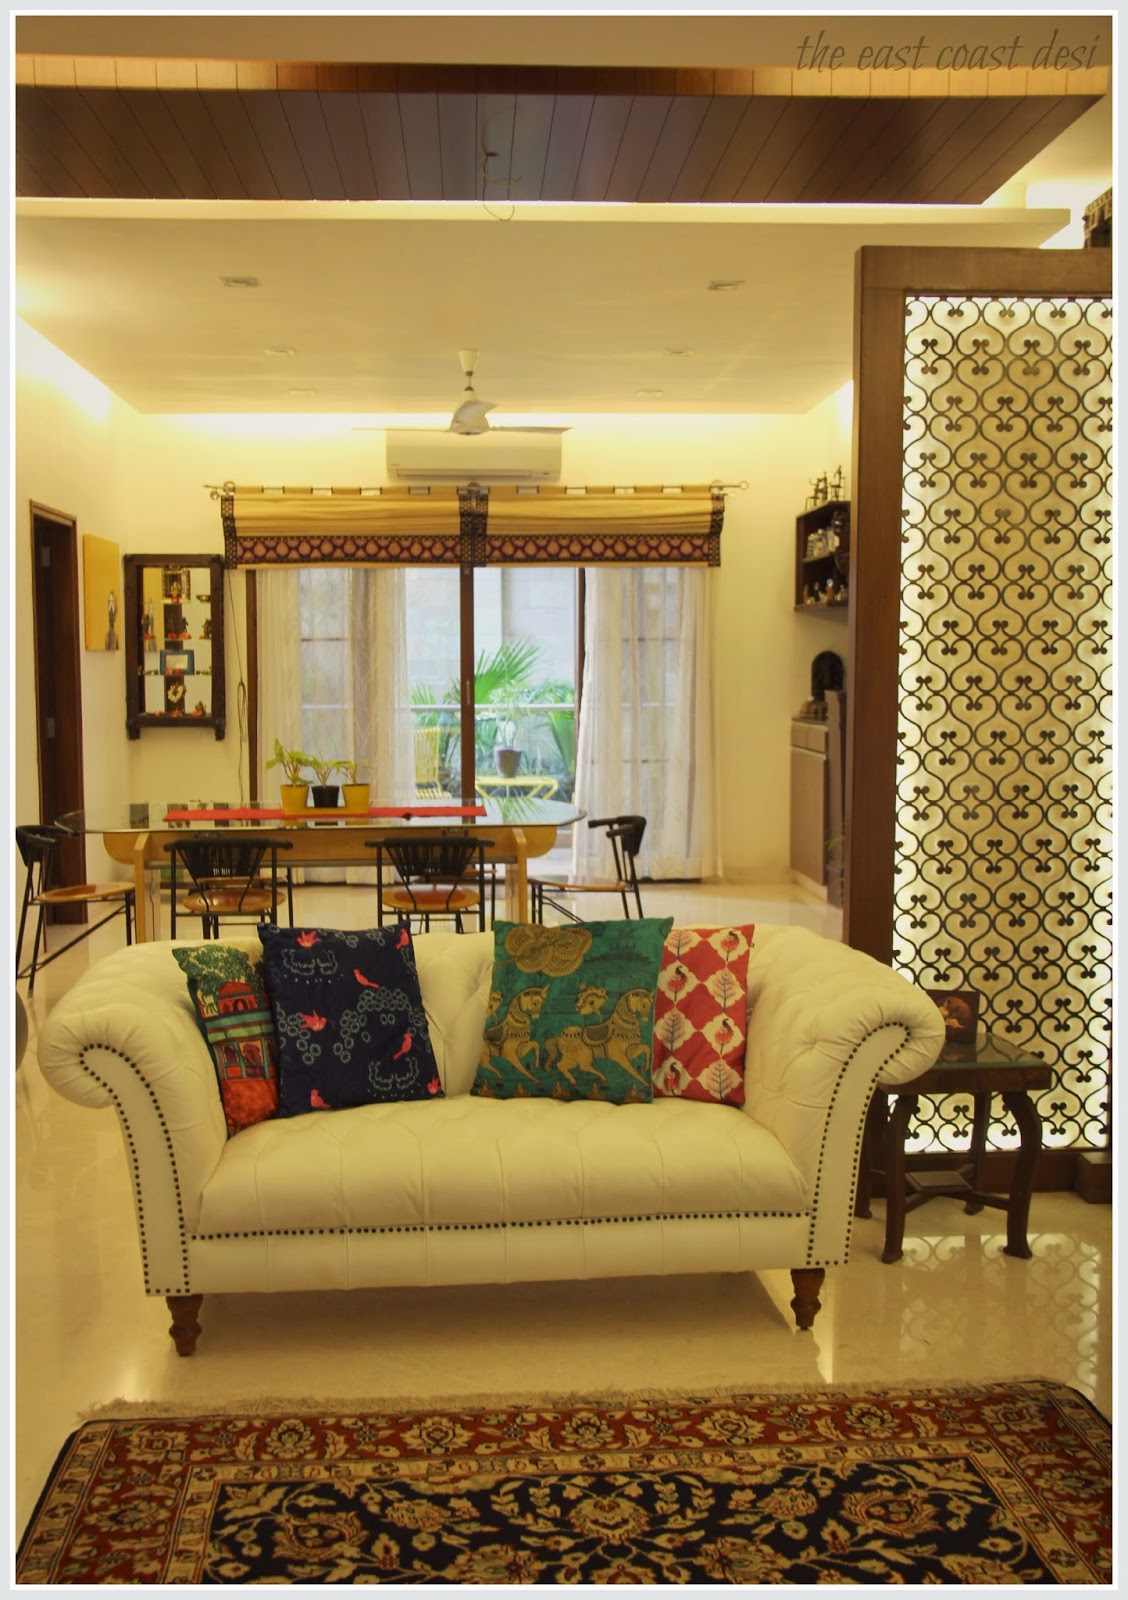 The east coast desi masterful mixing home tour for Modern home decor india